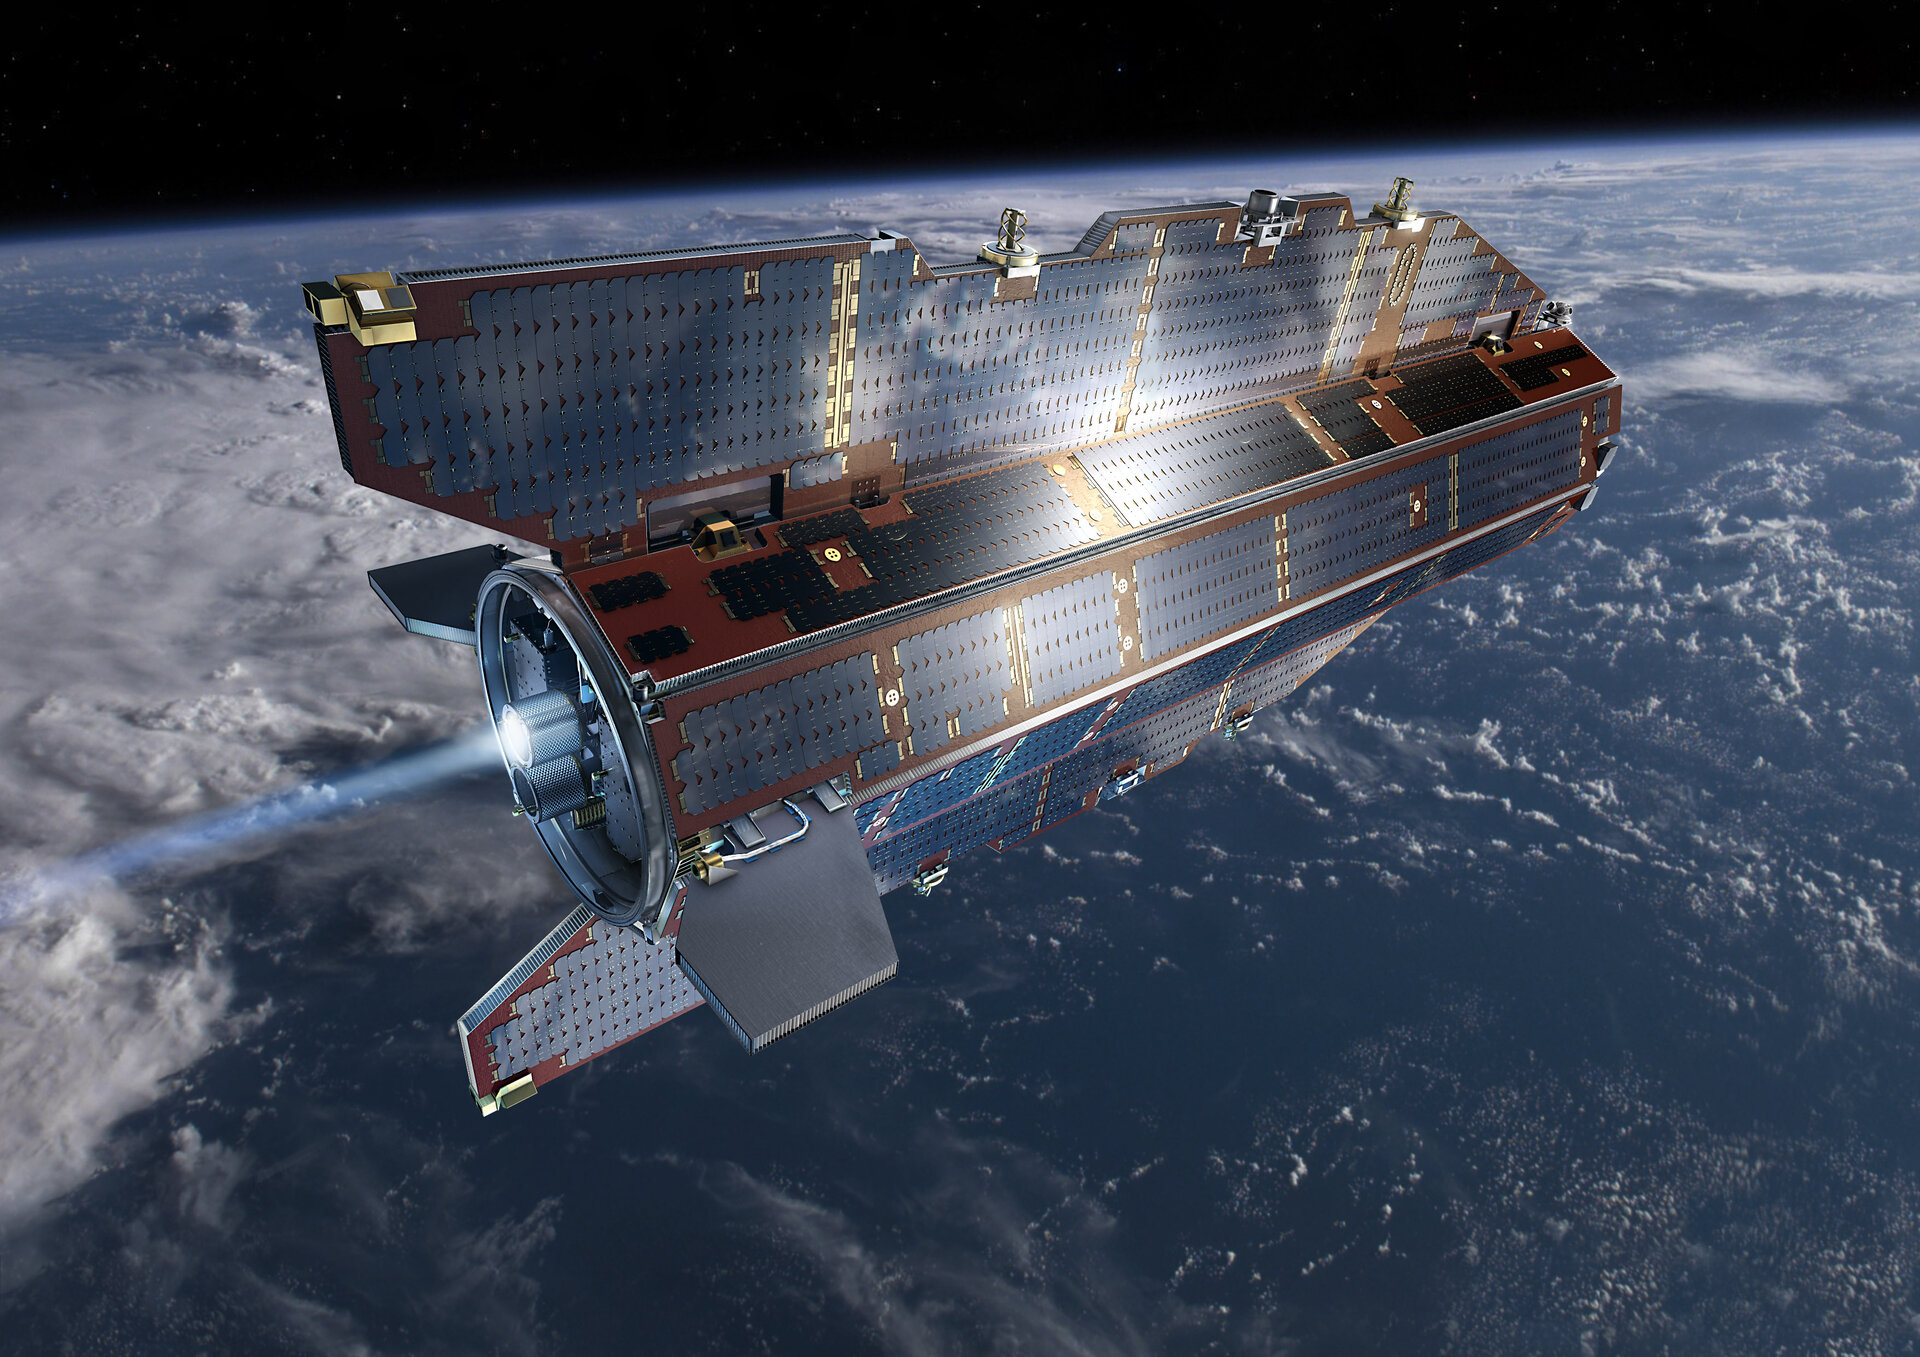 GOCE in orbit